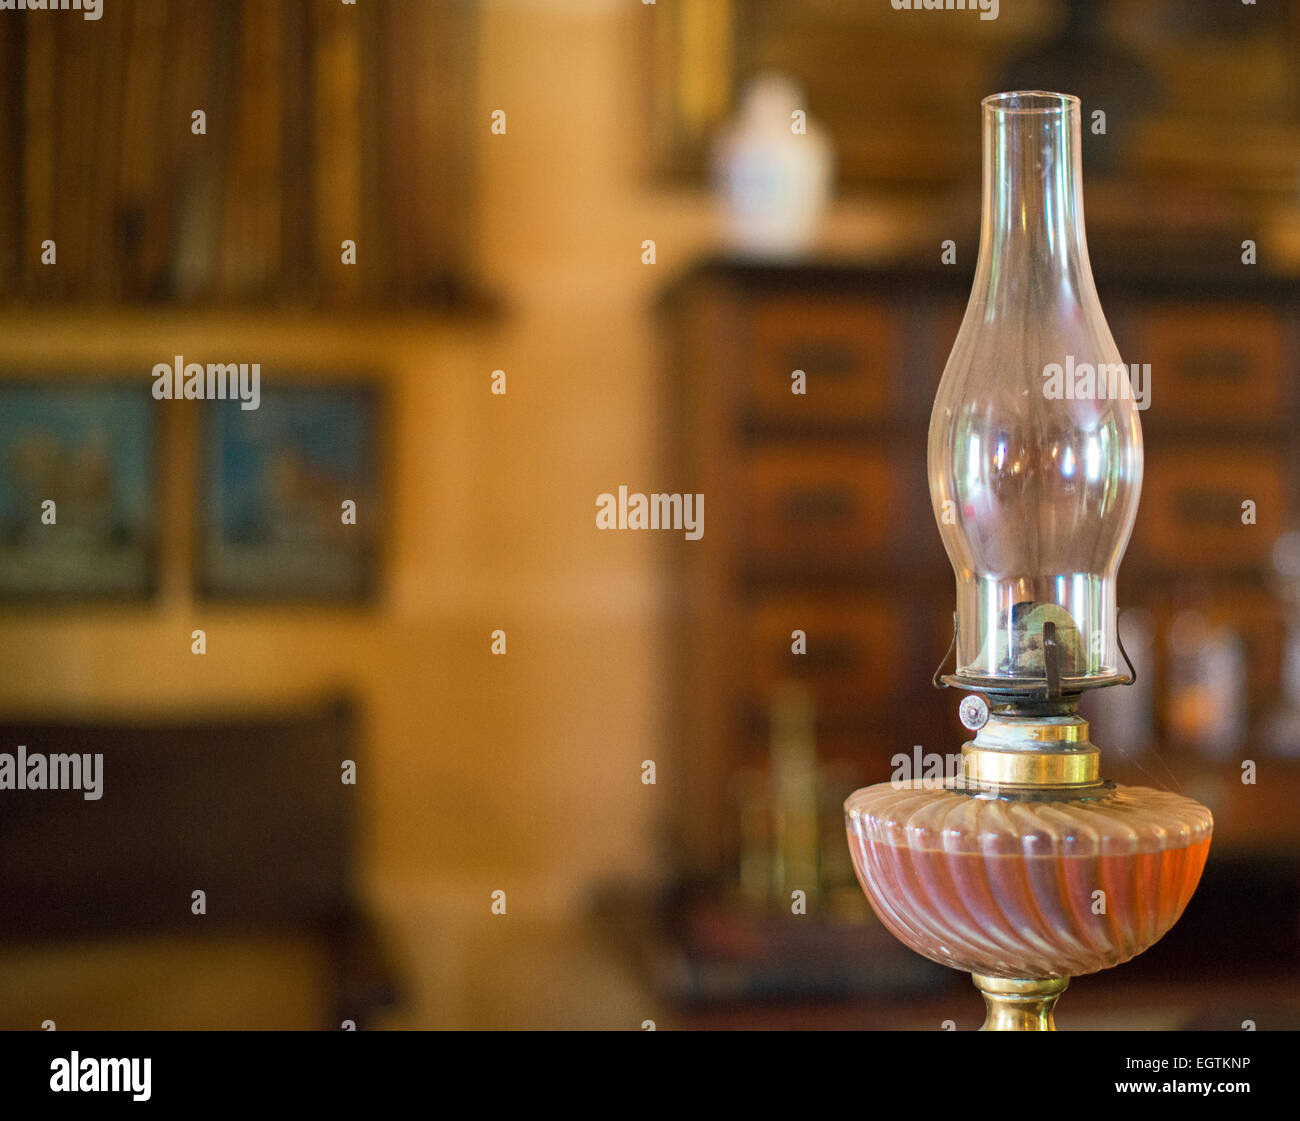 Antique oil lamp. Place for text. - Stock Image